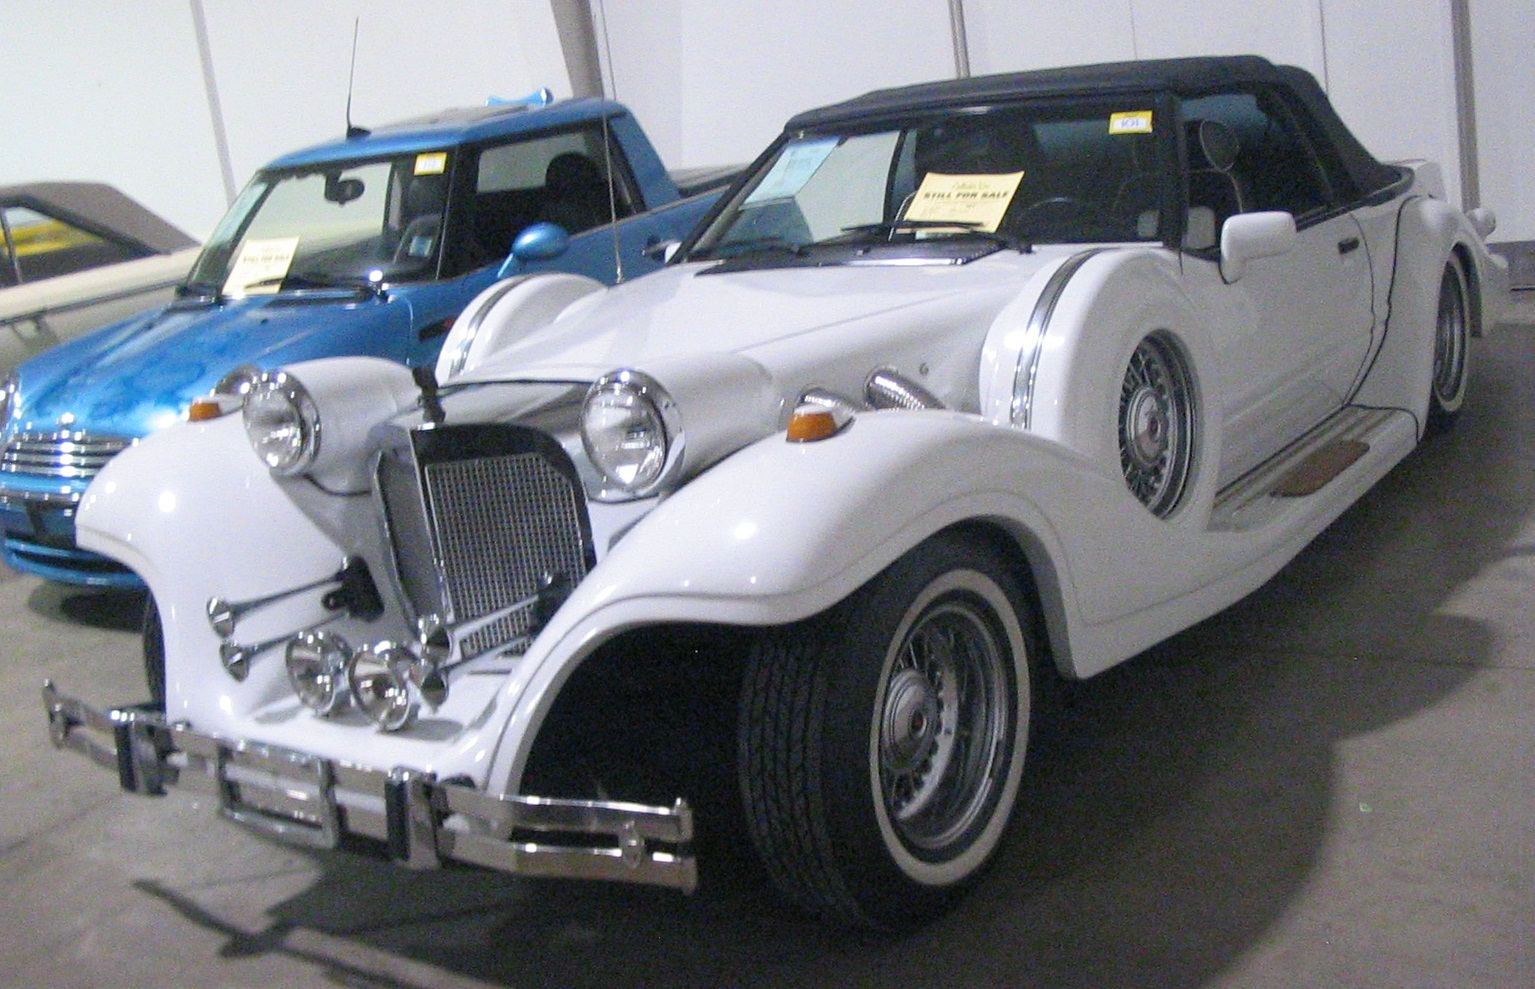 Top tips for keeping classic cars in mint condition - Freedom Channel